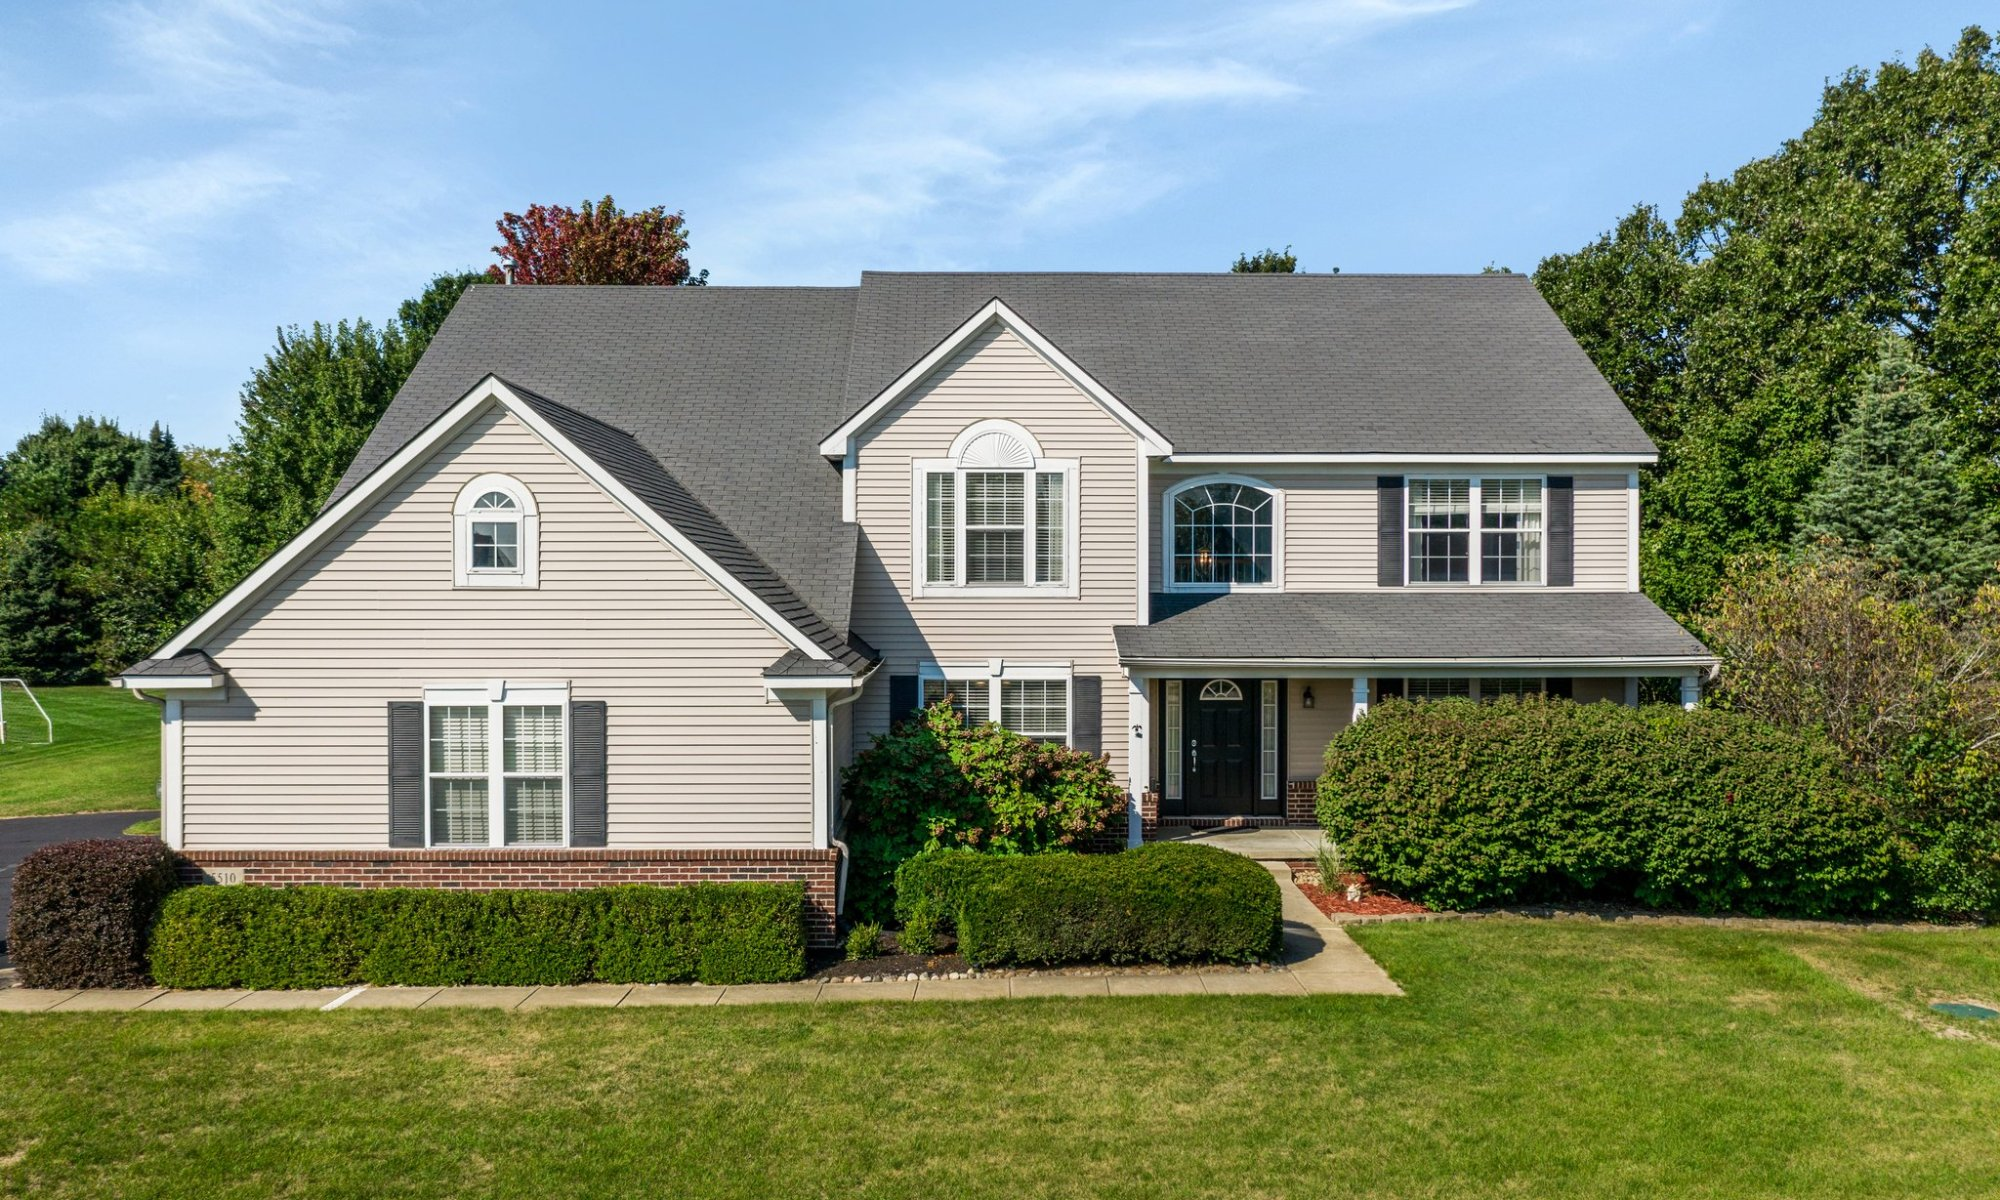 Brassow Woods Home for Sale